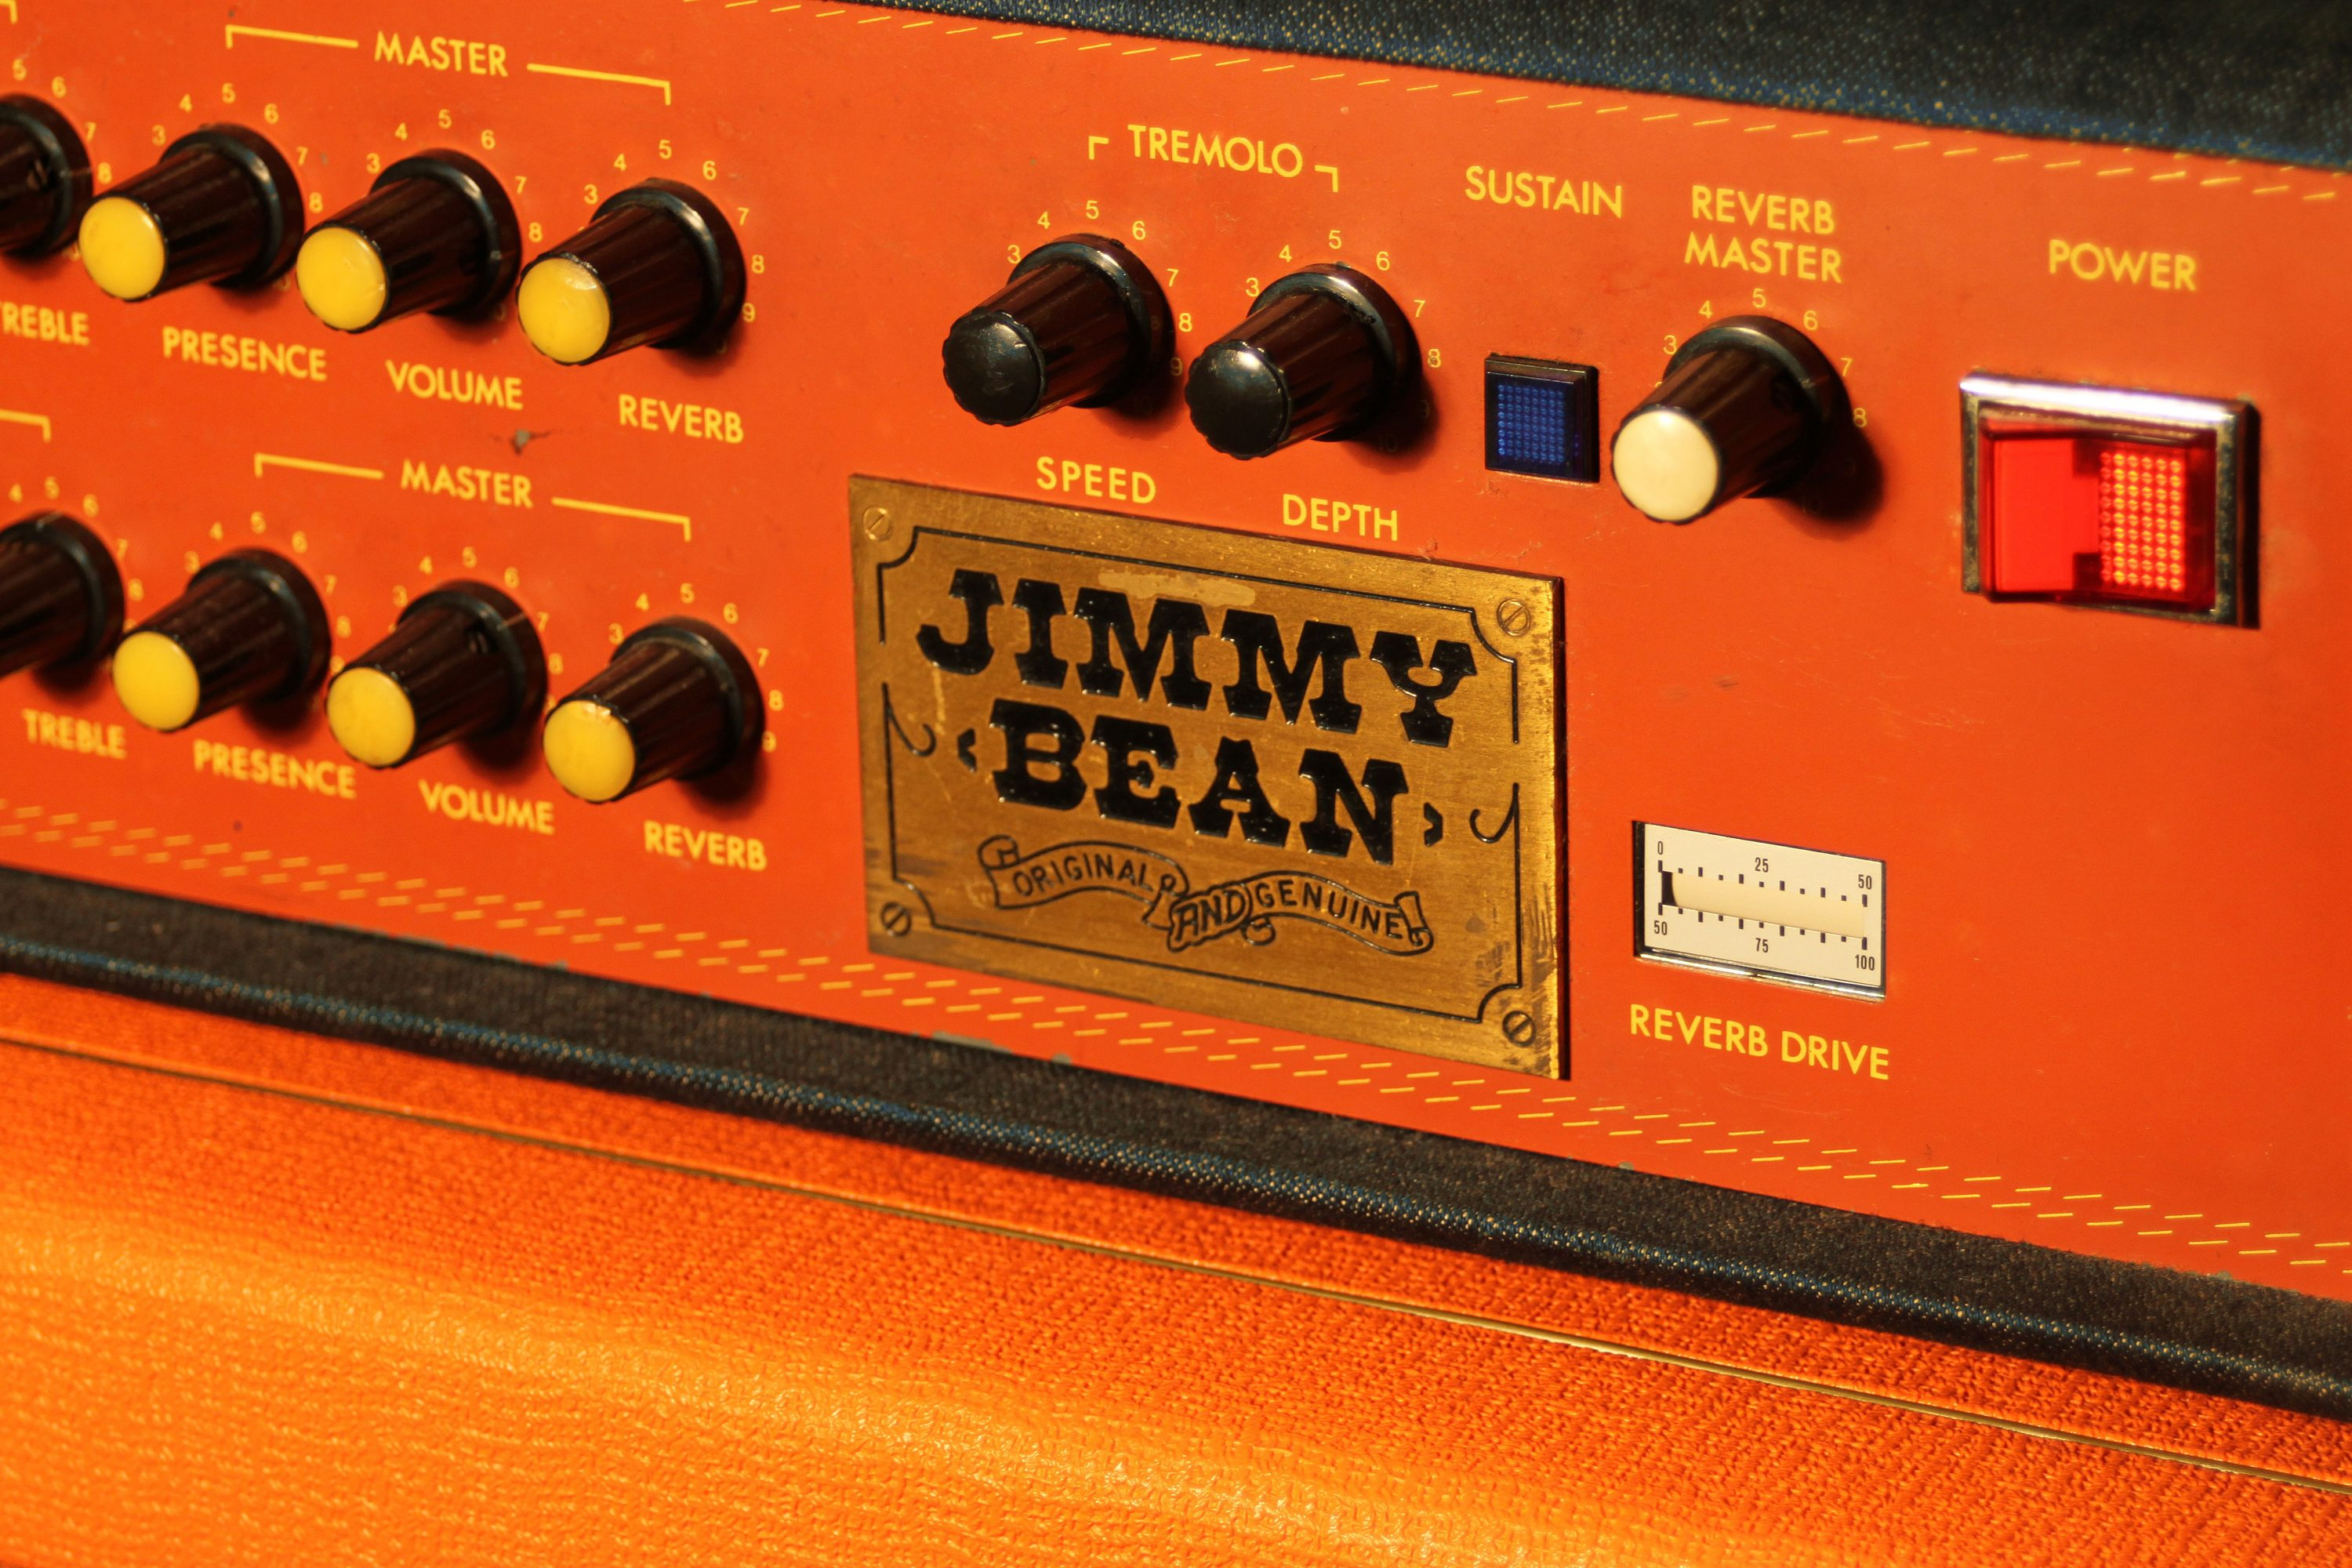 1975 Jimmy Bean Orange Amps The Birth Of An Amplifier Front Panel